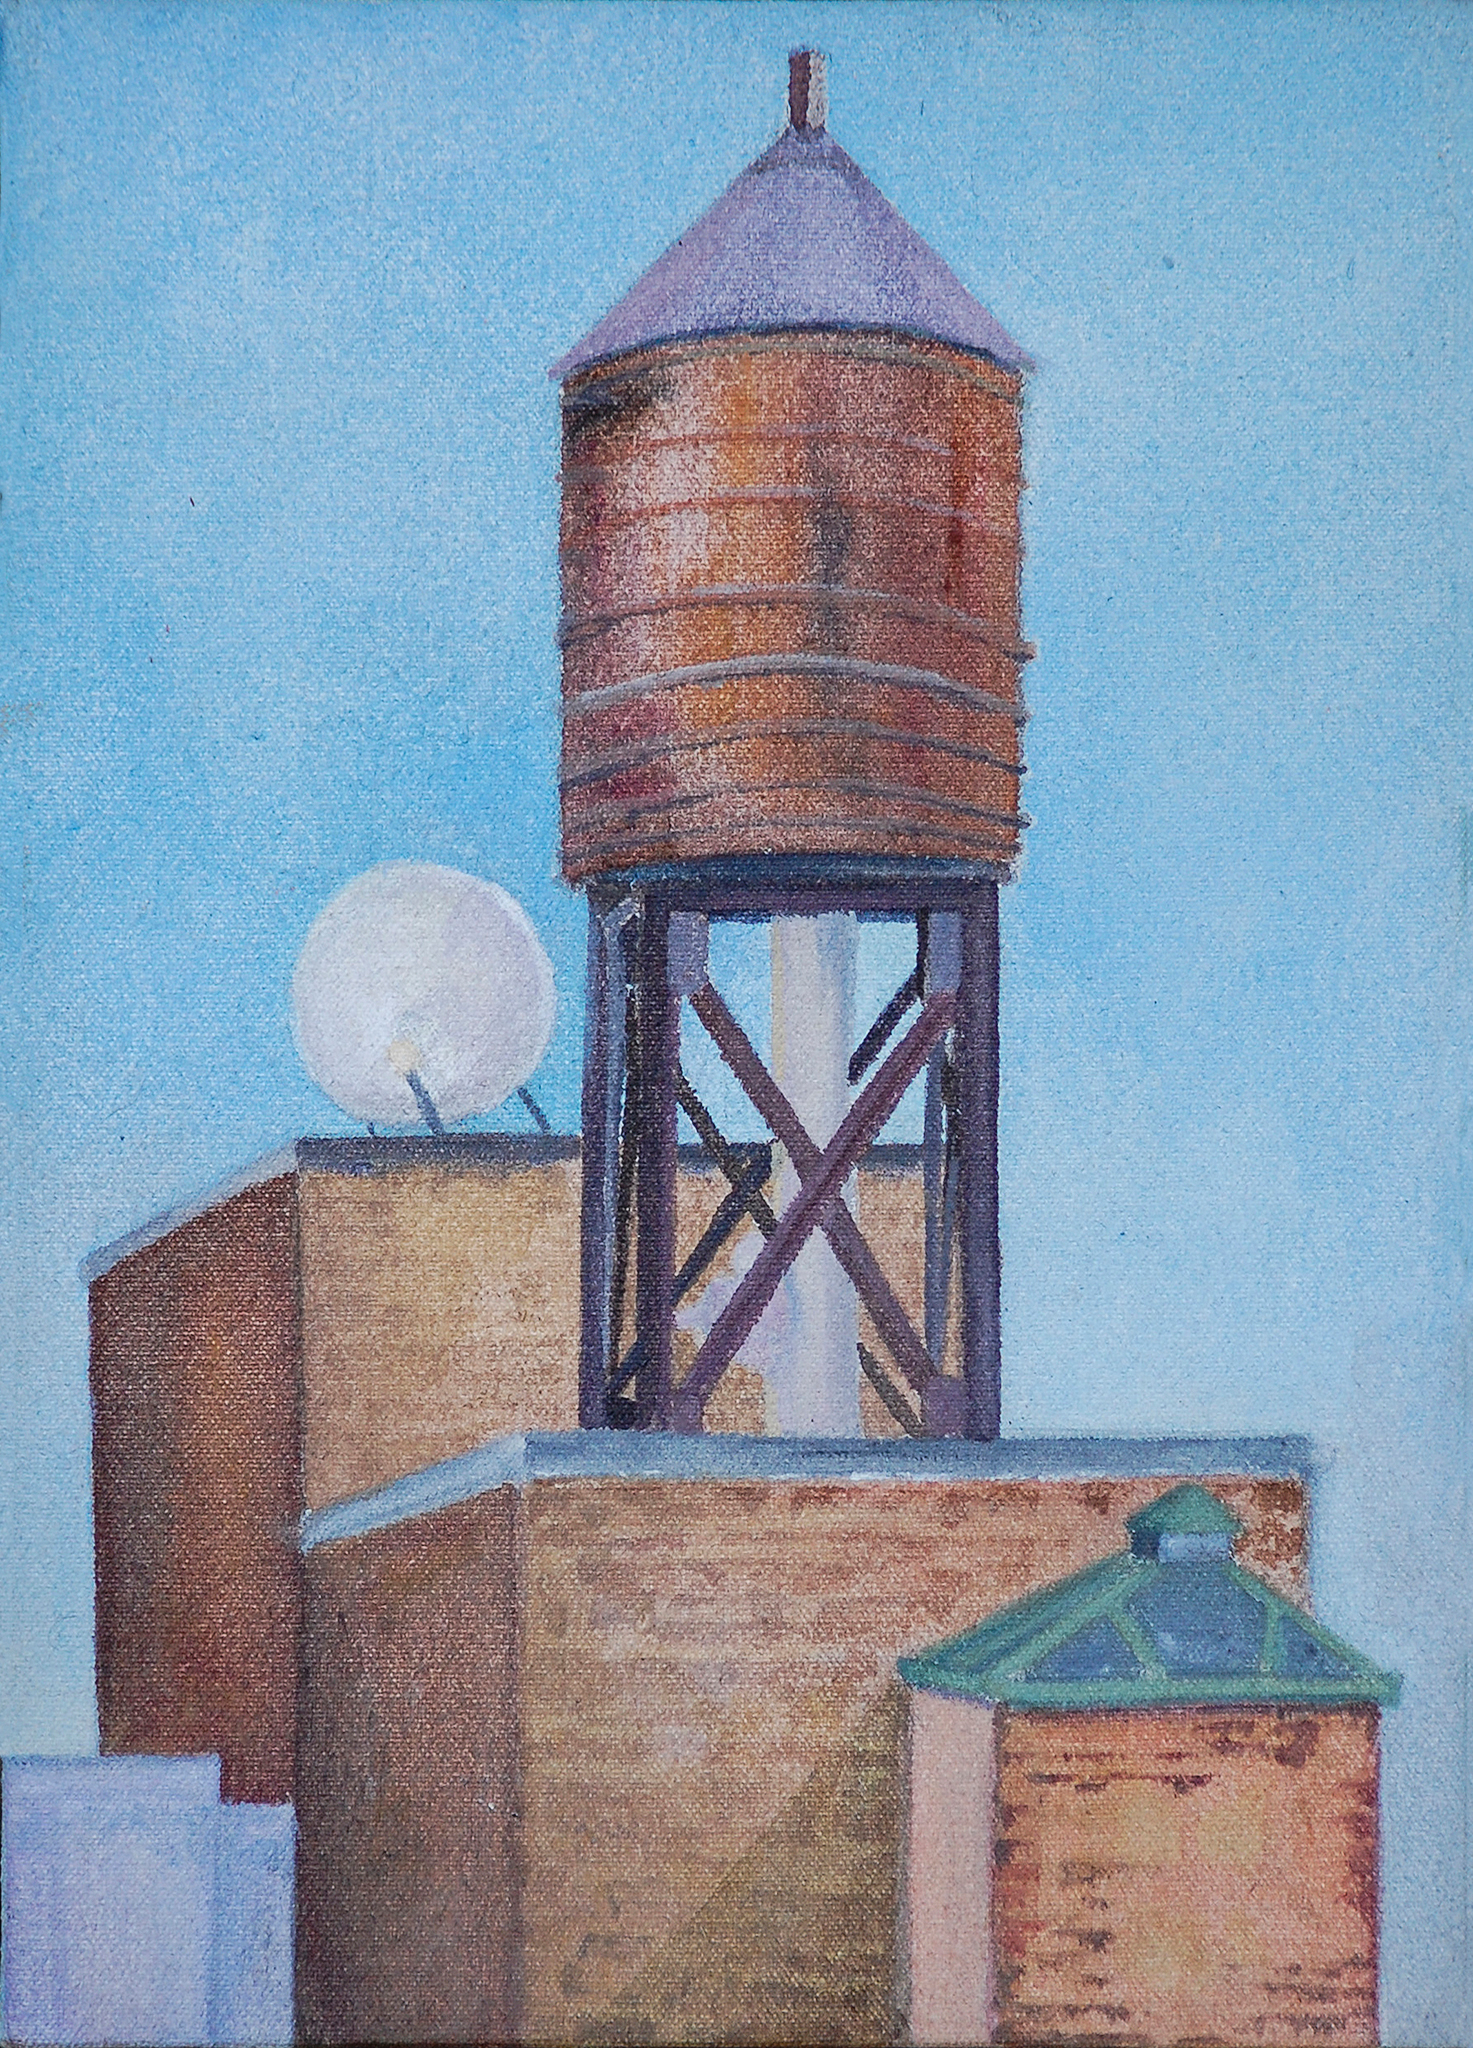 Rooftop (tank and dish)